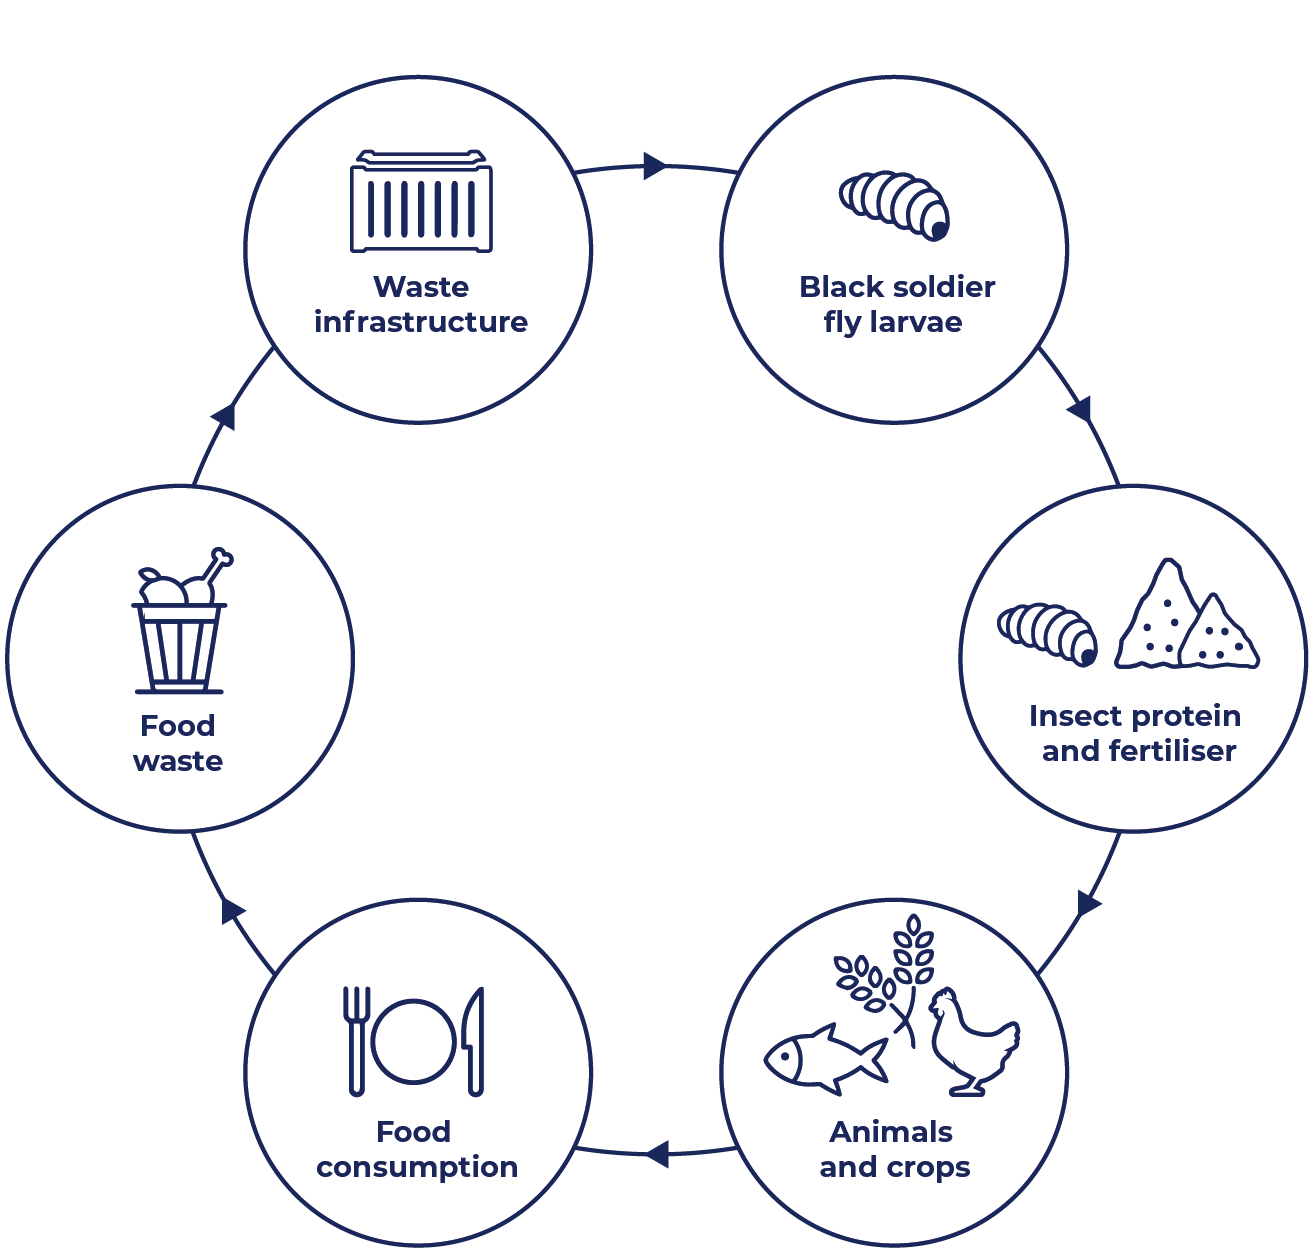 Circle diagram with icons, starts at food consumption, leads to food waste, waste infrastructure, black soldier fly larvae, insect protein and fertiliser, animals and cops, and back to food consumption.